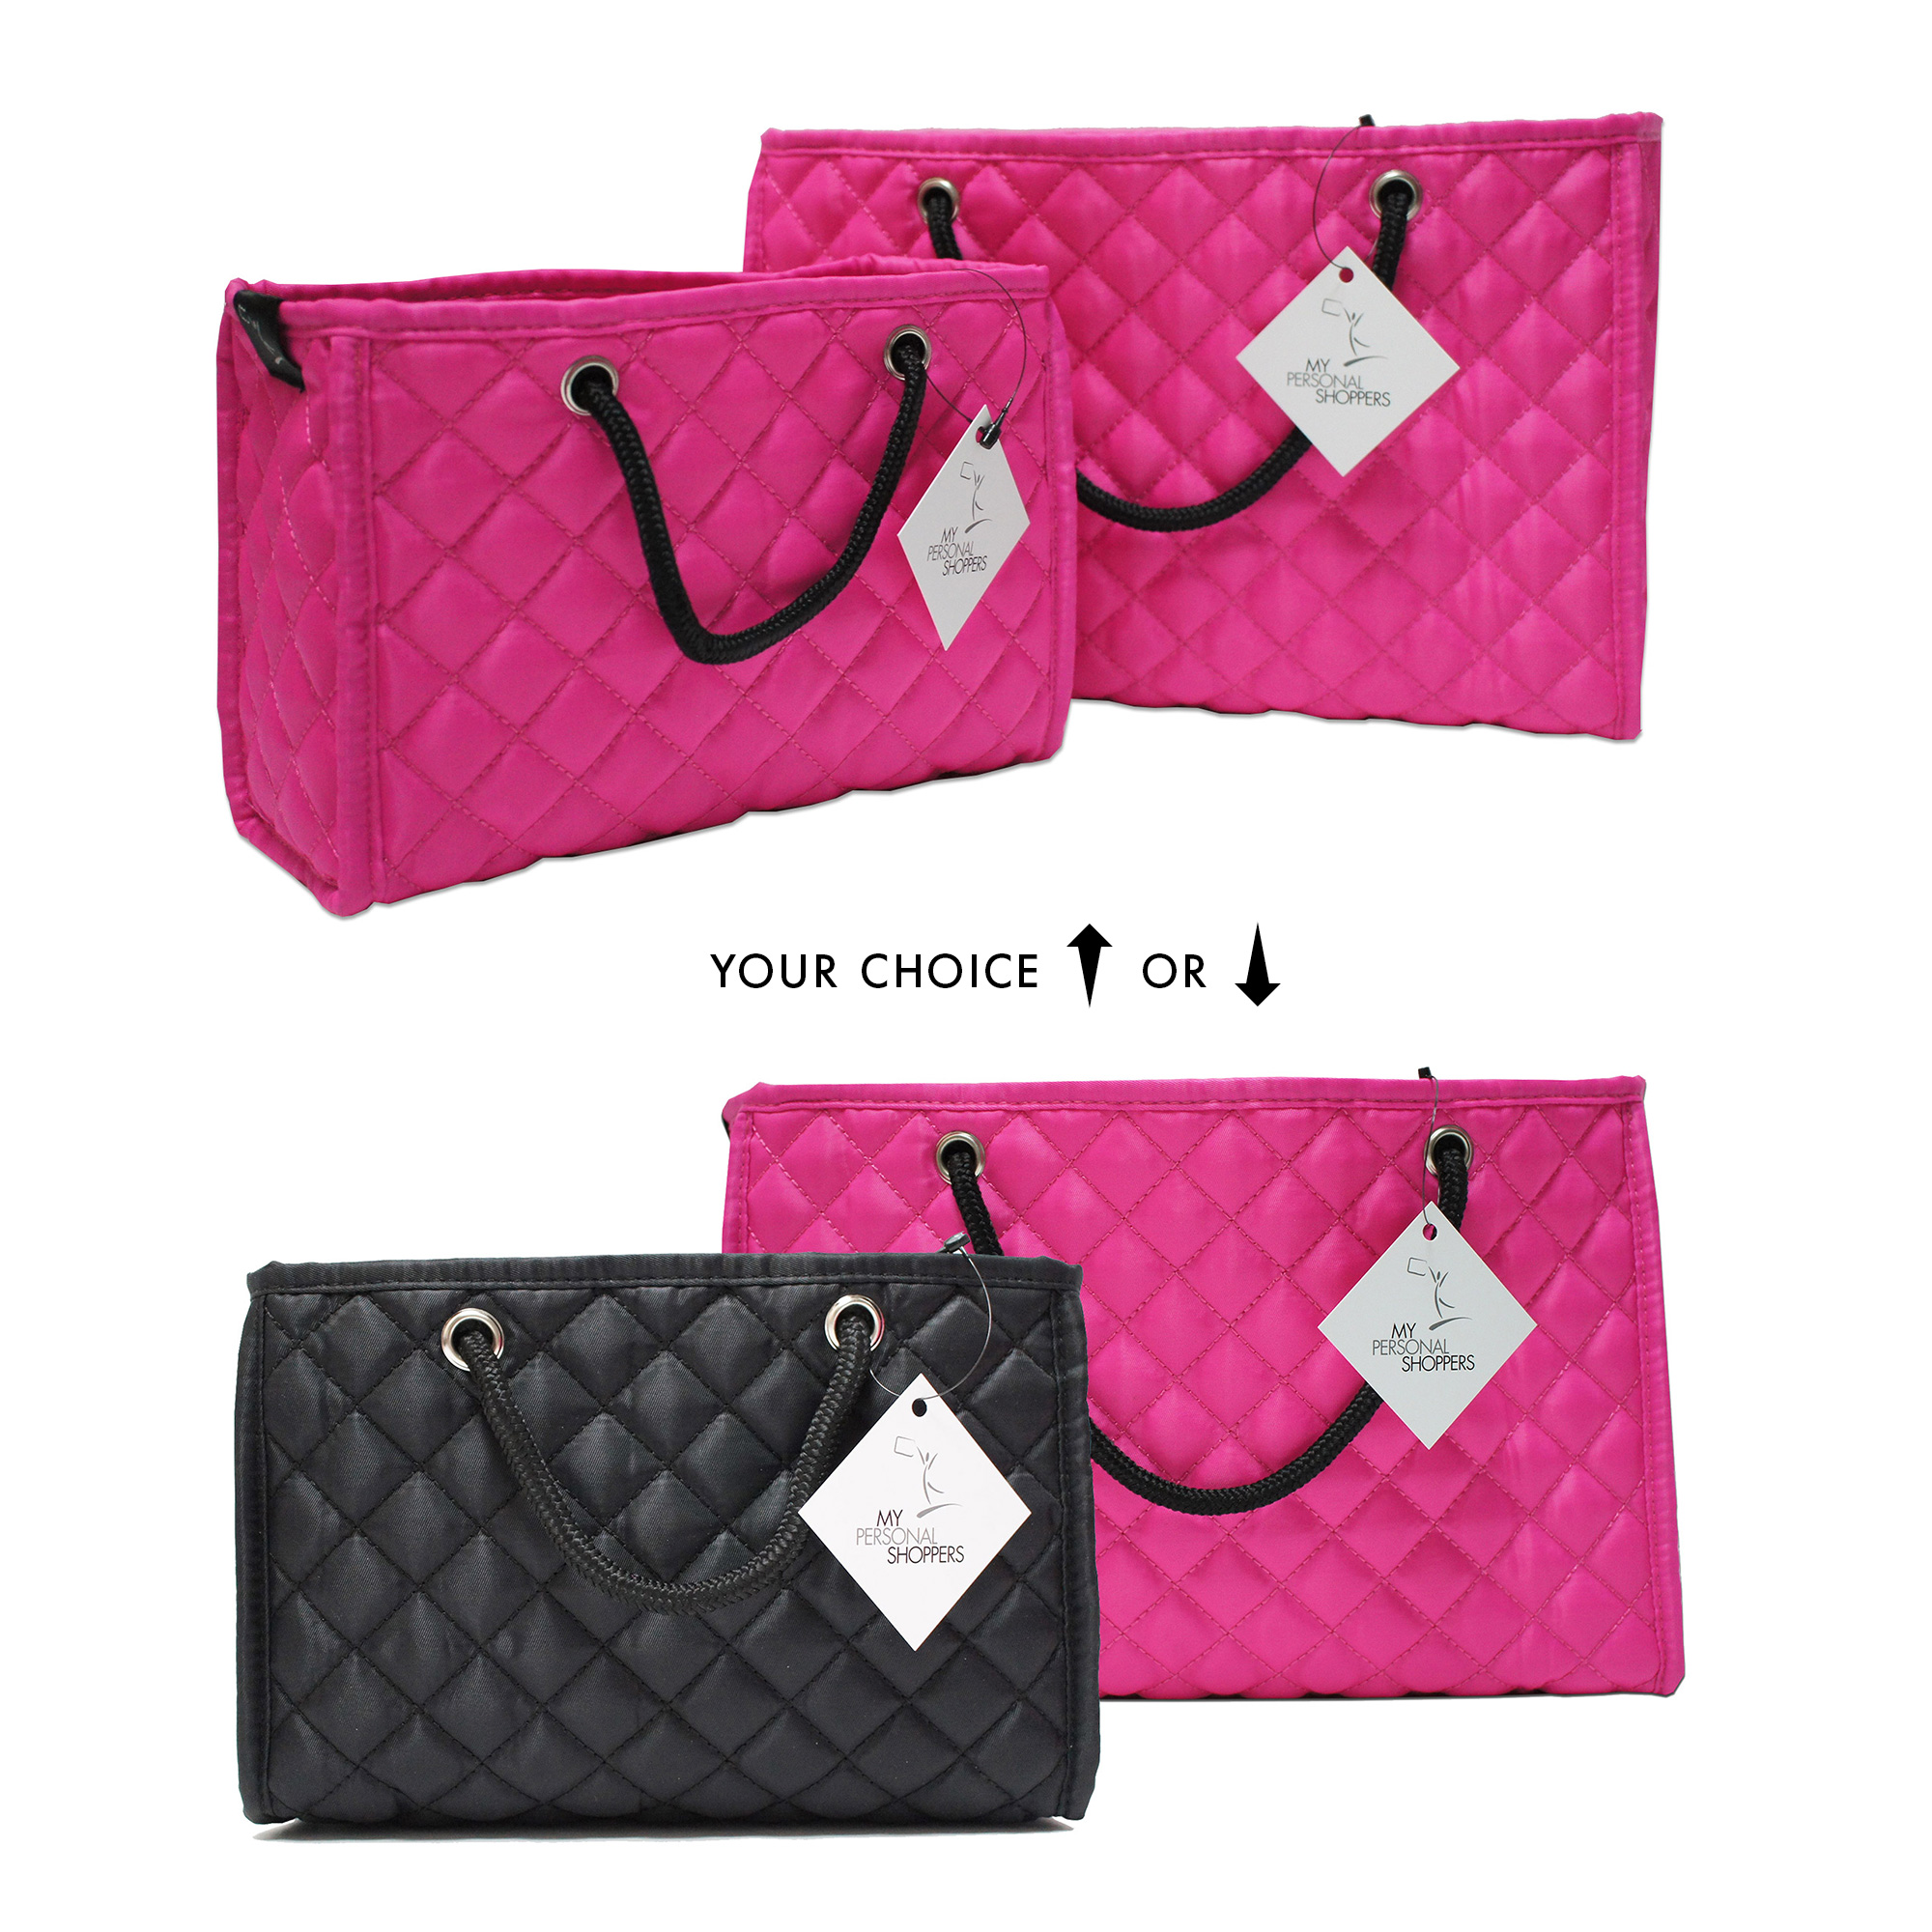 71b2b1001b646 Zoe Quilted Handbag Organizer Insert with Removable Base (2-Pack ...